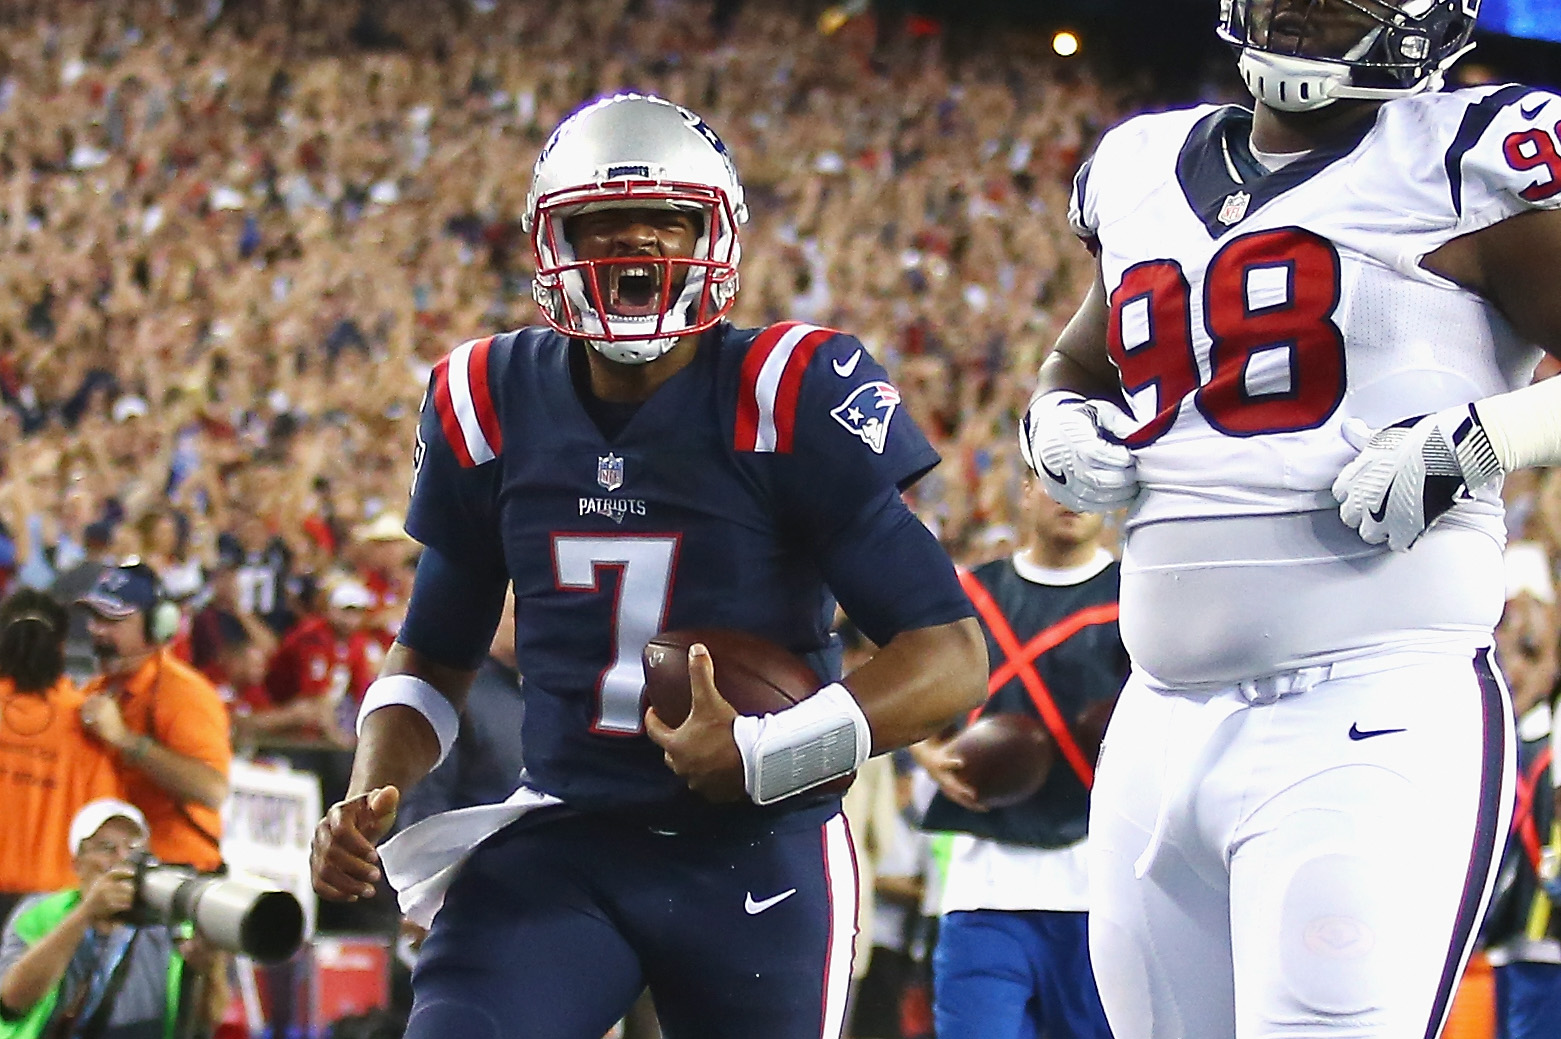 FOXBORO, MA - SEPTEMBER 22:  Jacoby Brissett #7 of the New England Patriots celebrates scoring a touchdown during the first quarter against the Houston Texans at Gillette Stadium on September 22, 2016 in Foxboro, Massachusetts.  (Photo by Adam Glanzman/Getty Images)